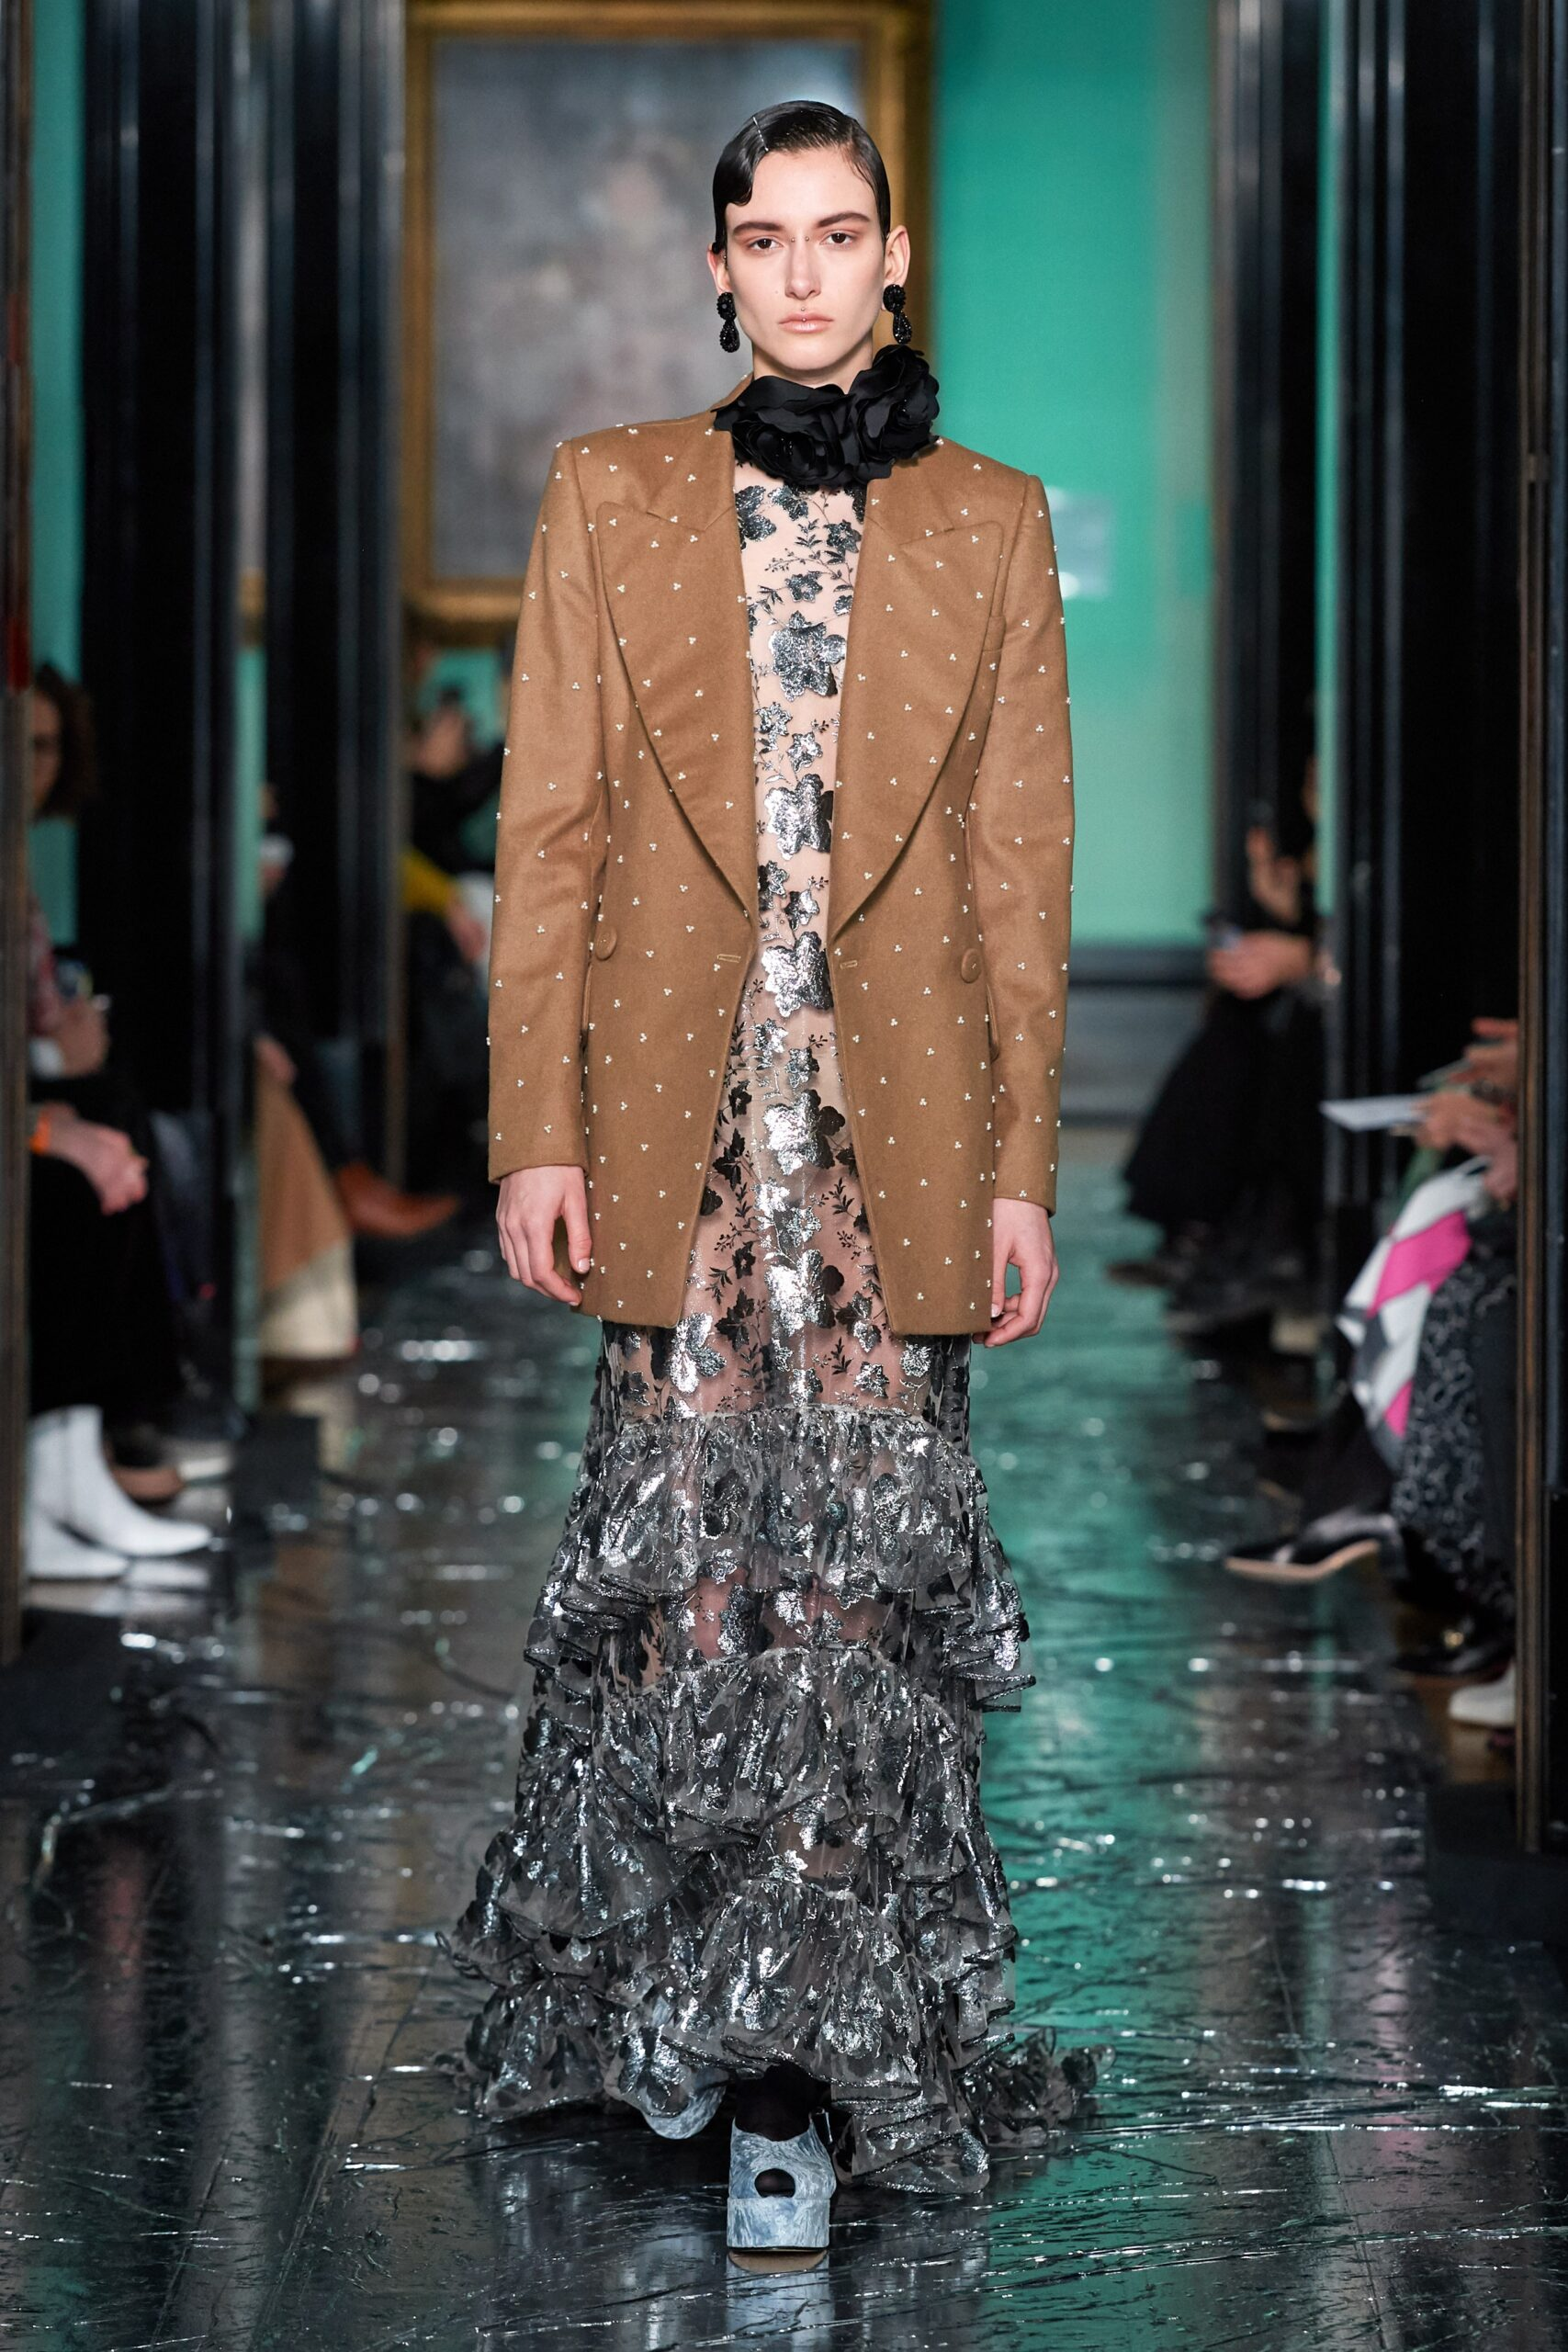 Erdem Fall 2020 ready-to-wear